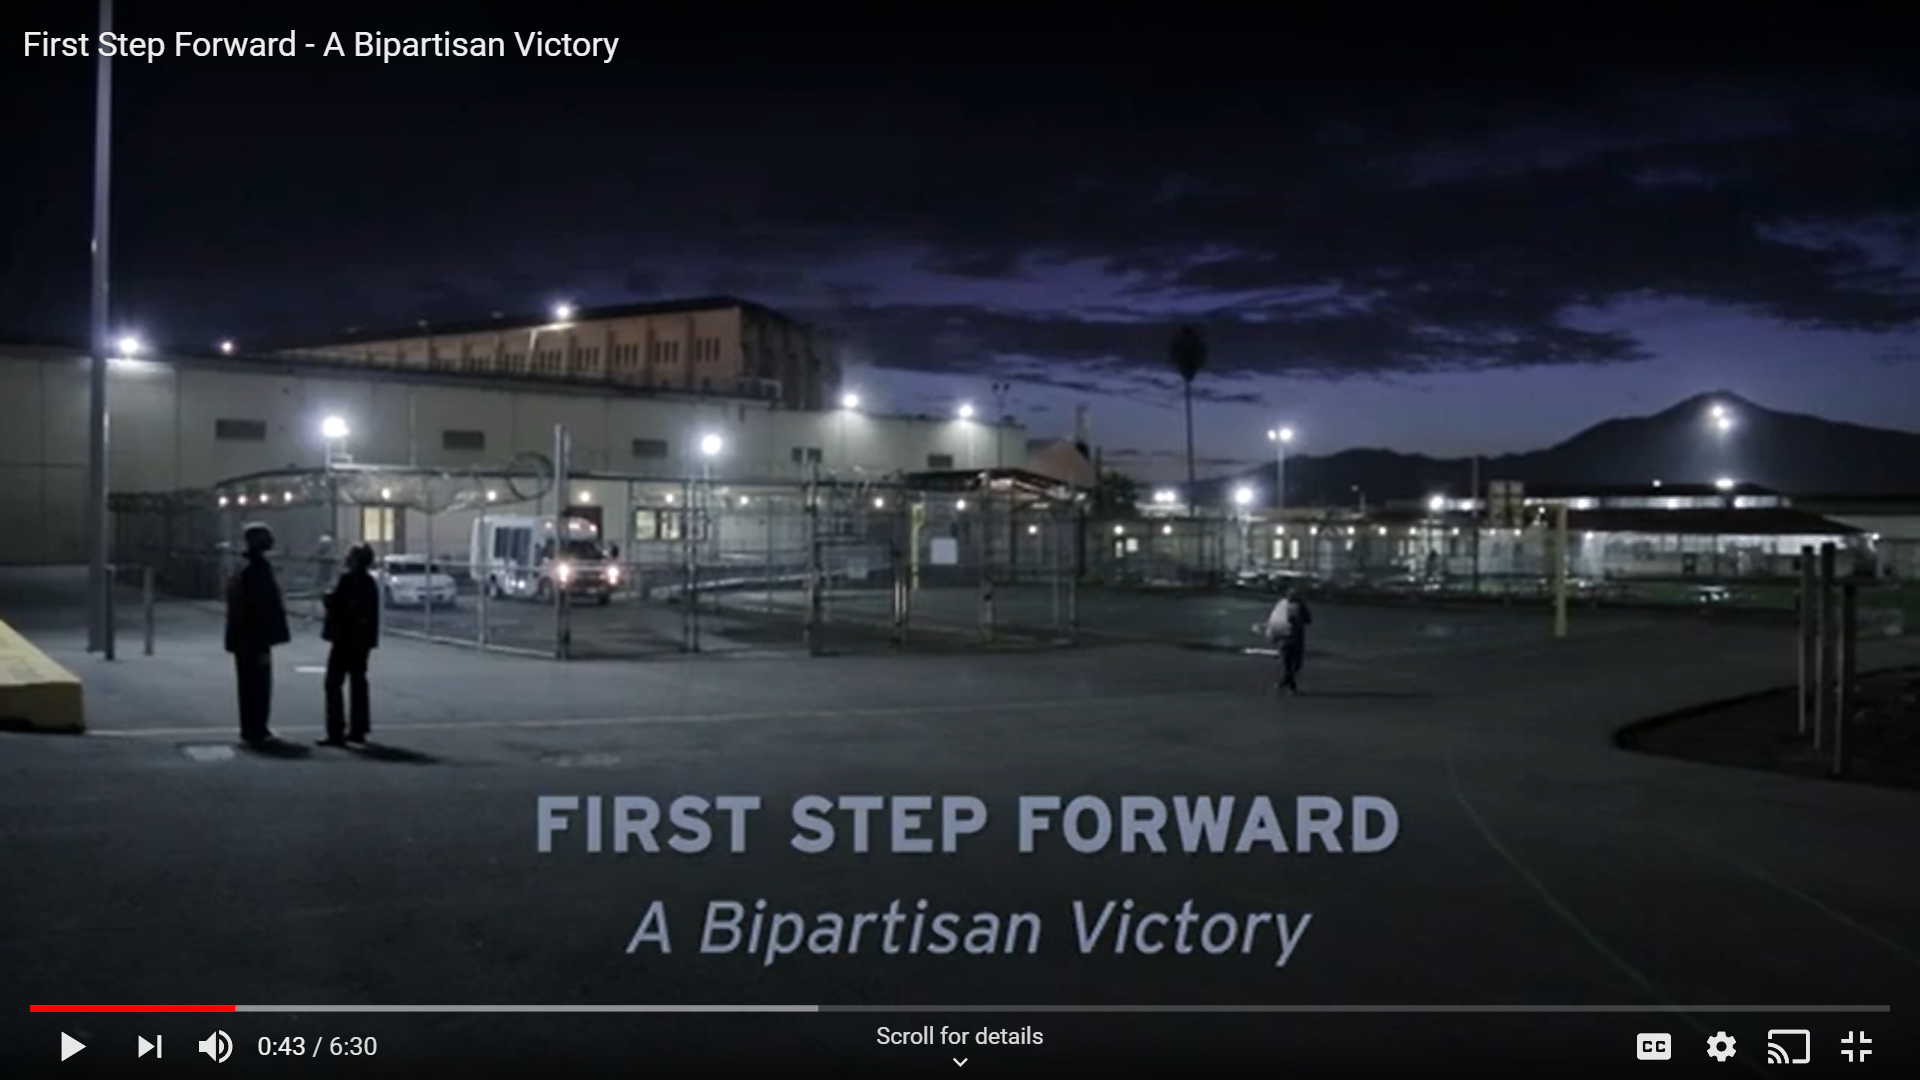 First Step Forward - A Bipartisan Victory